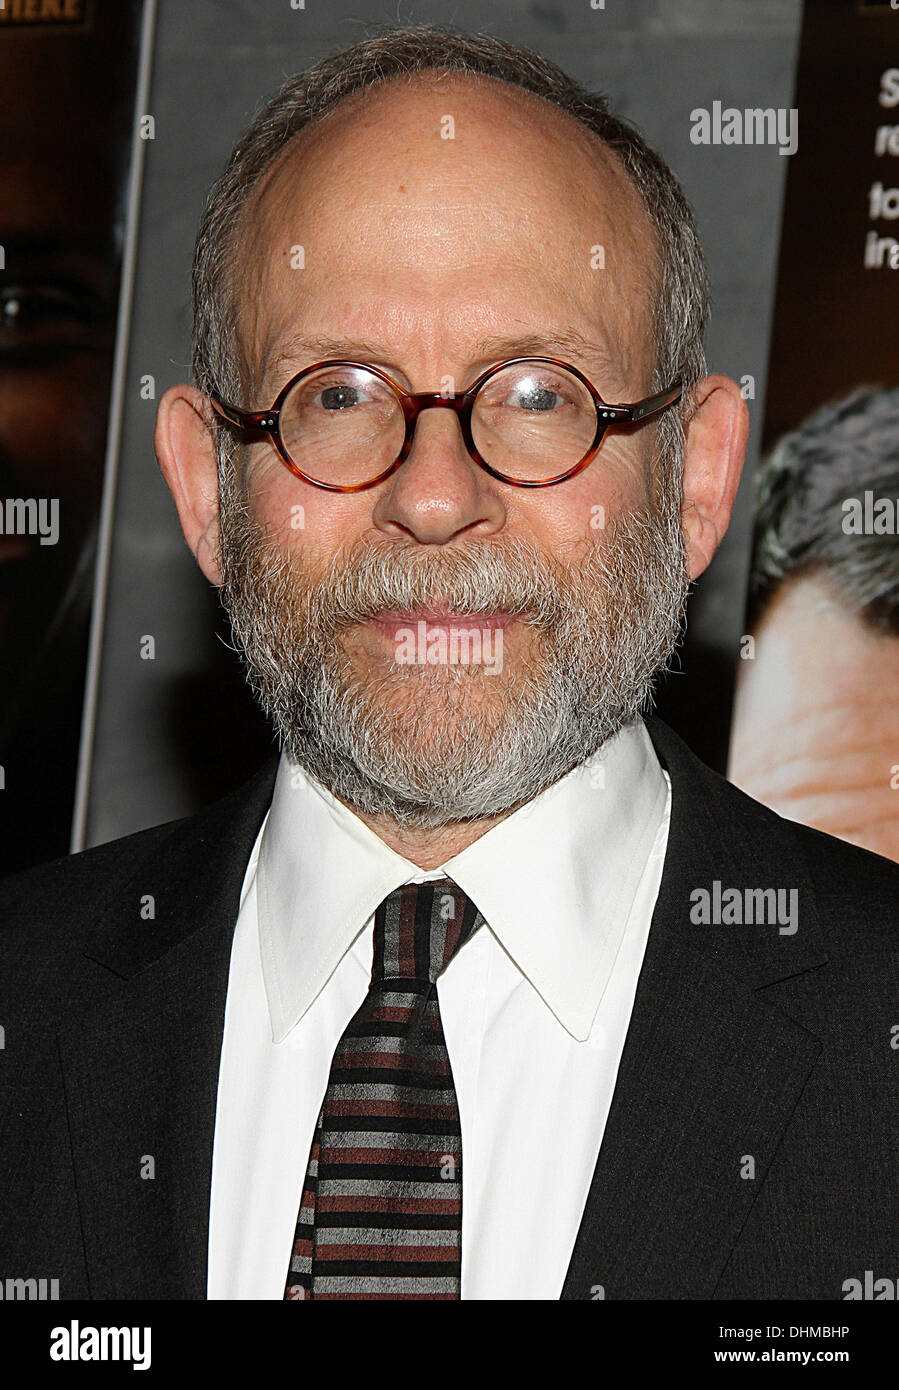 bob balaban heightbob balaban parents, bob balaban wikipedia, bob balaban, bob balaban midnight cowboy, bob balaban friends, боб балабан, bob balaban net worth, bob balaban moonrise kingdom, bob balaban animals, bob balaban young, bob balaban height, bob balaban lynn grossman, bob balaban instagram, bob balaban simpsons, bob balaban imdb, bob balaban seinfeld, bob balaban movies, bob balaban wiki, bob balaban close encounters, bob balaban wife